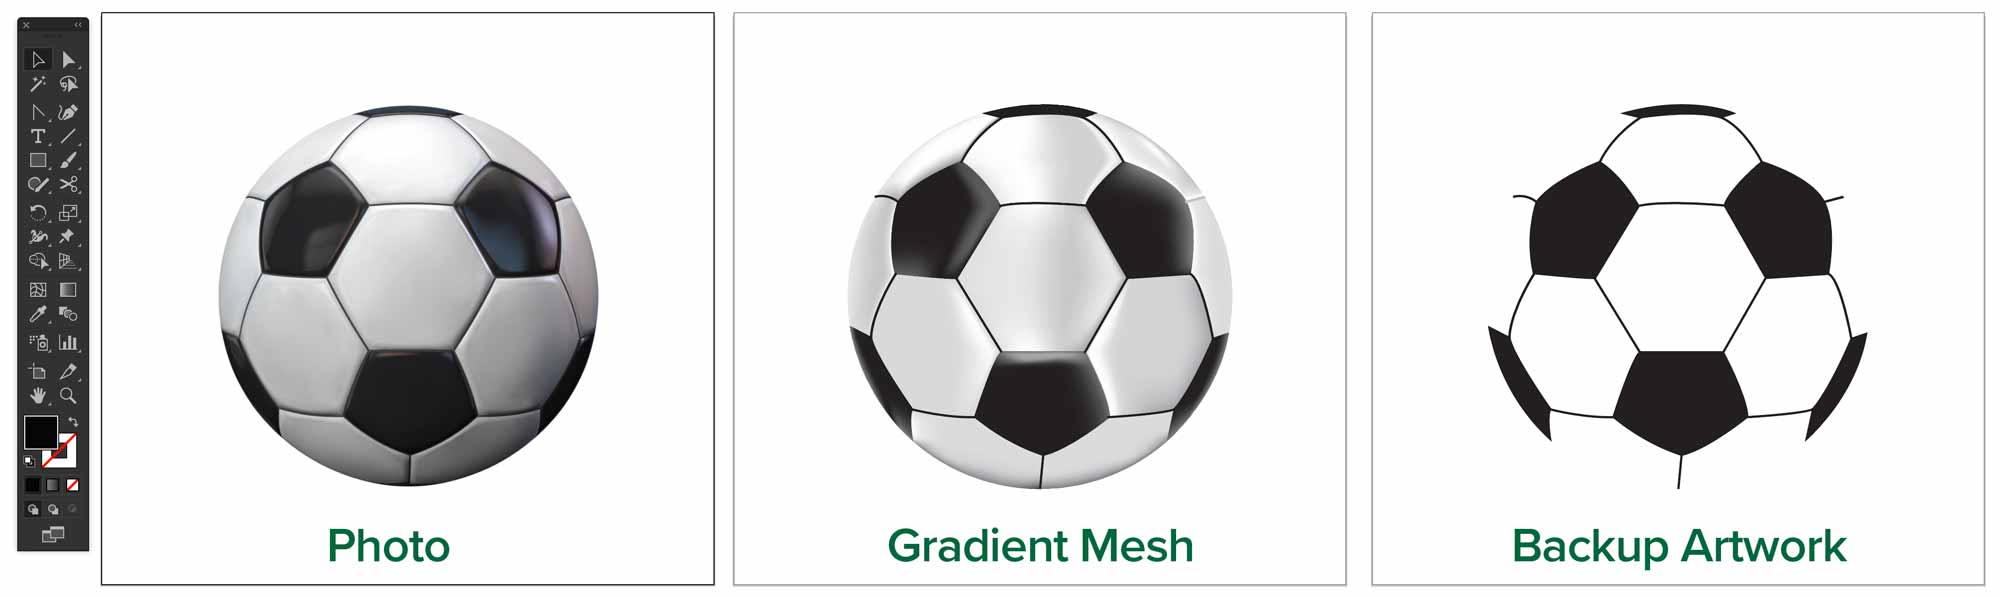 gradient-mesh-soccer-ball